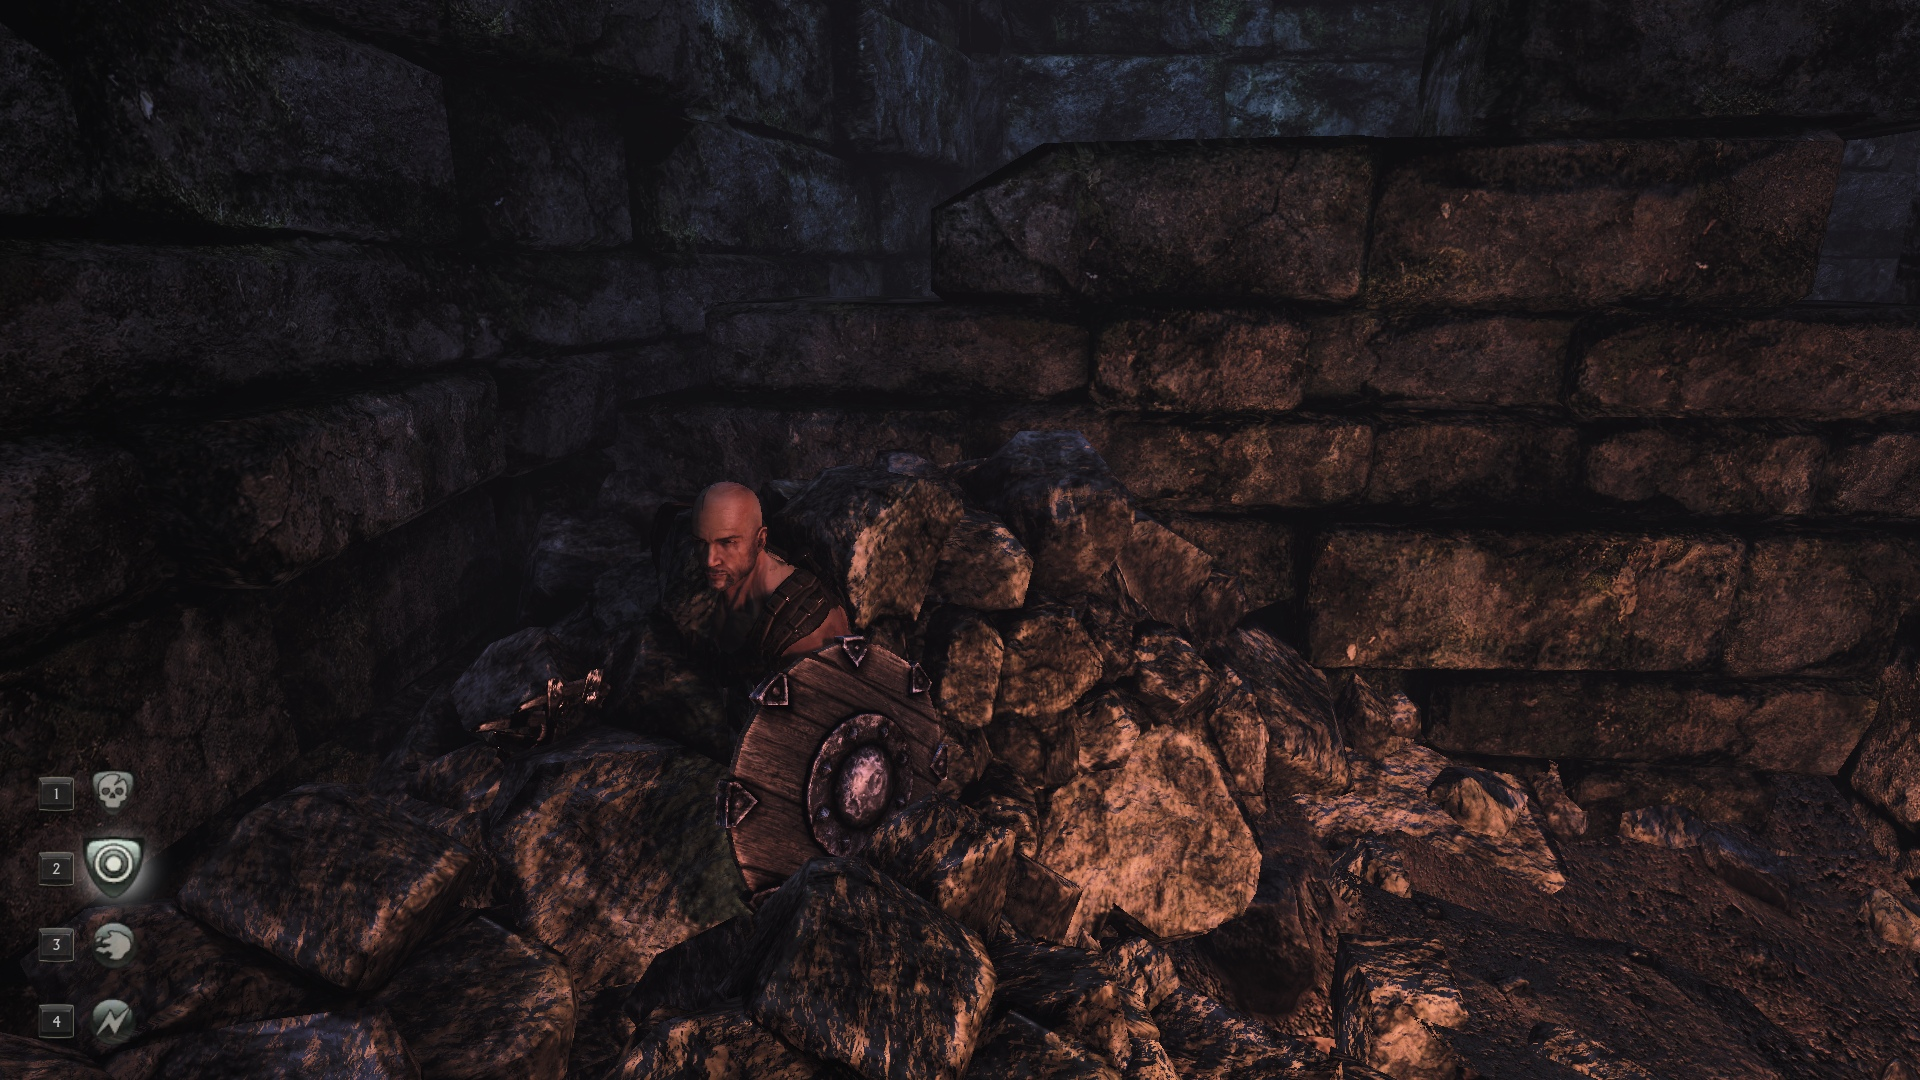 Hunted: The Demon's Forge PC Performance Analysis - DSOGaming